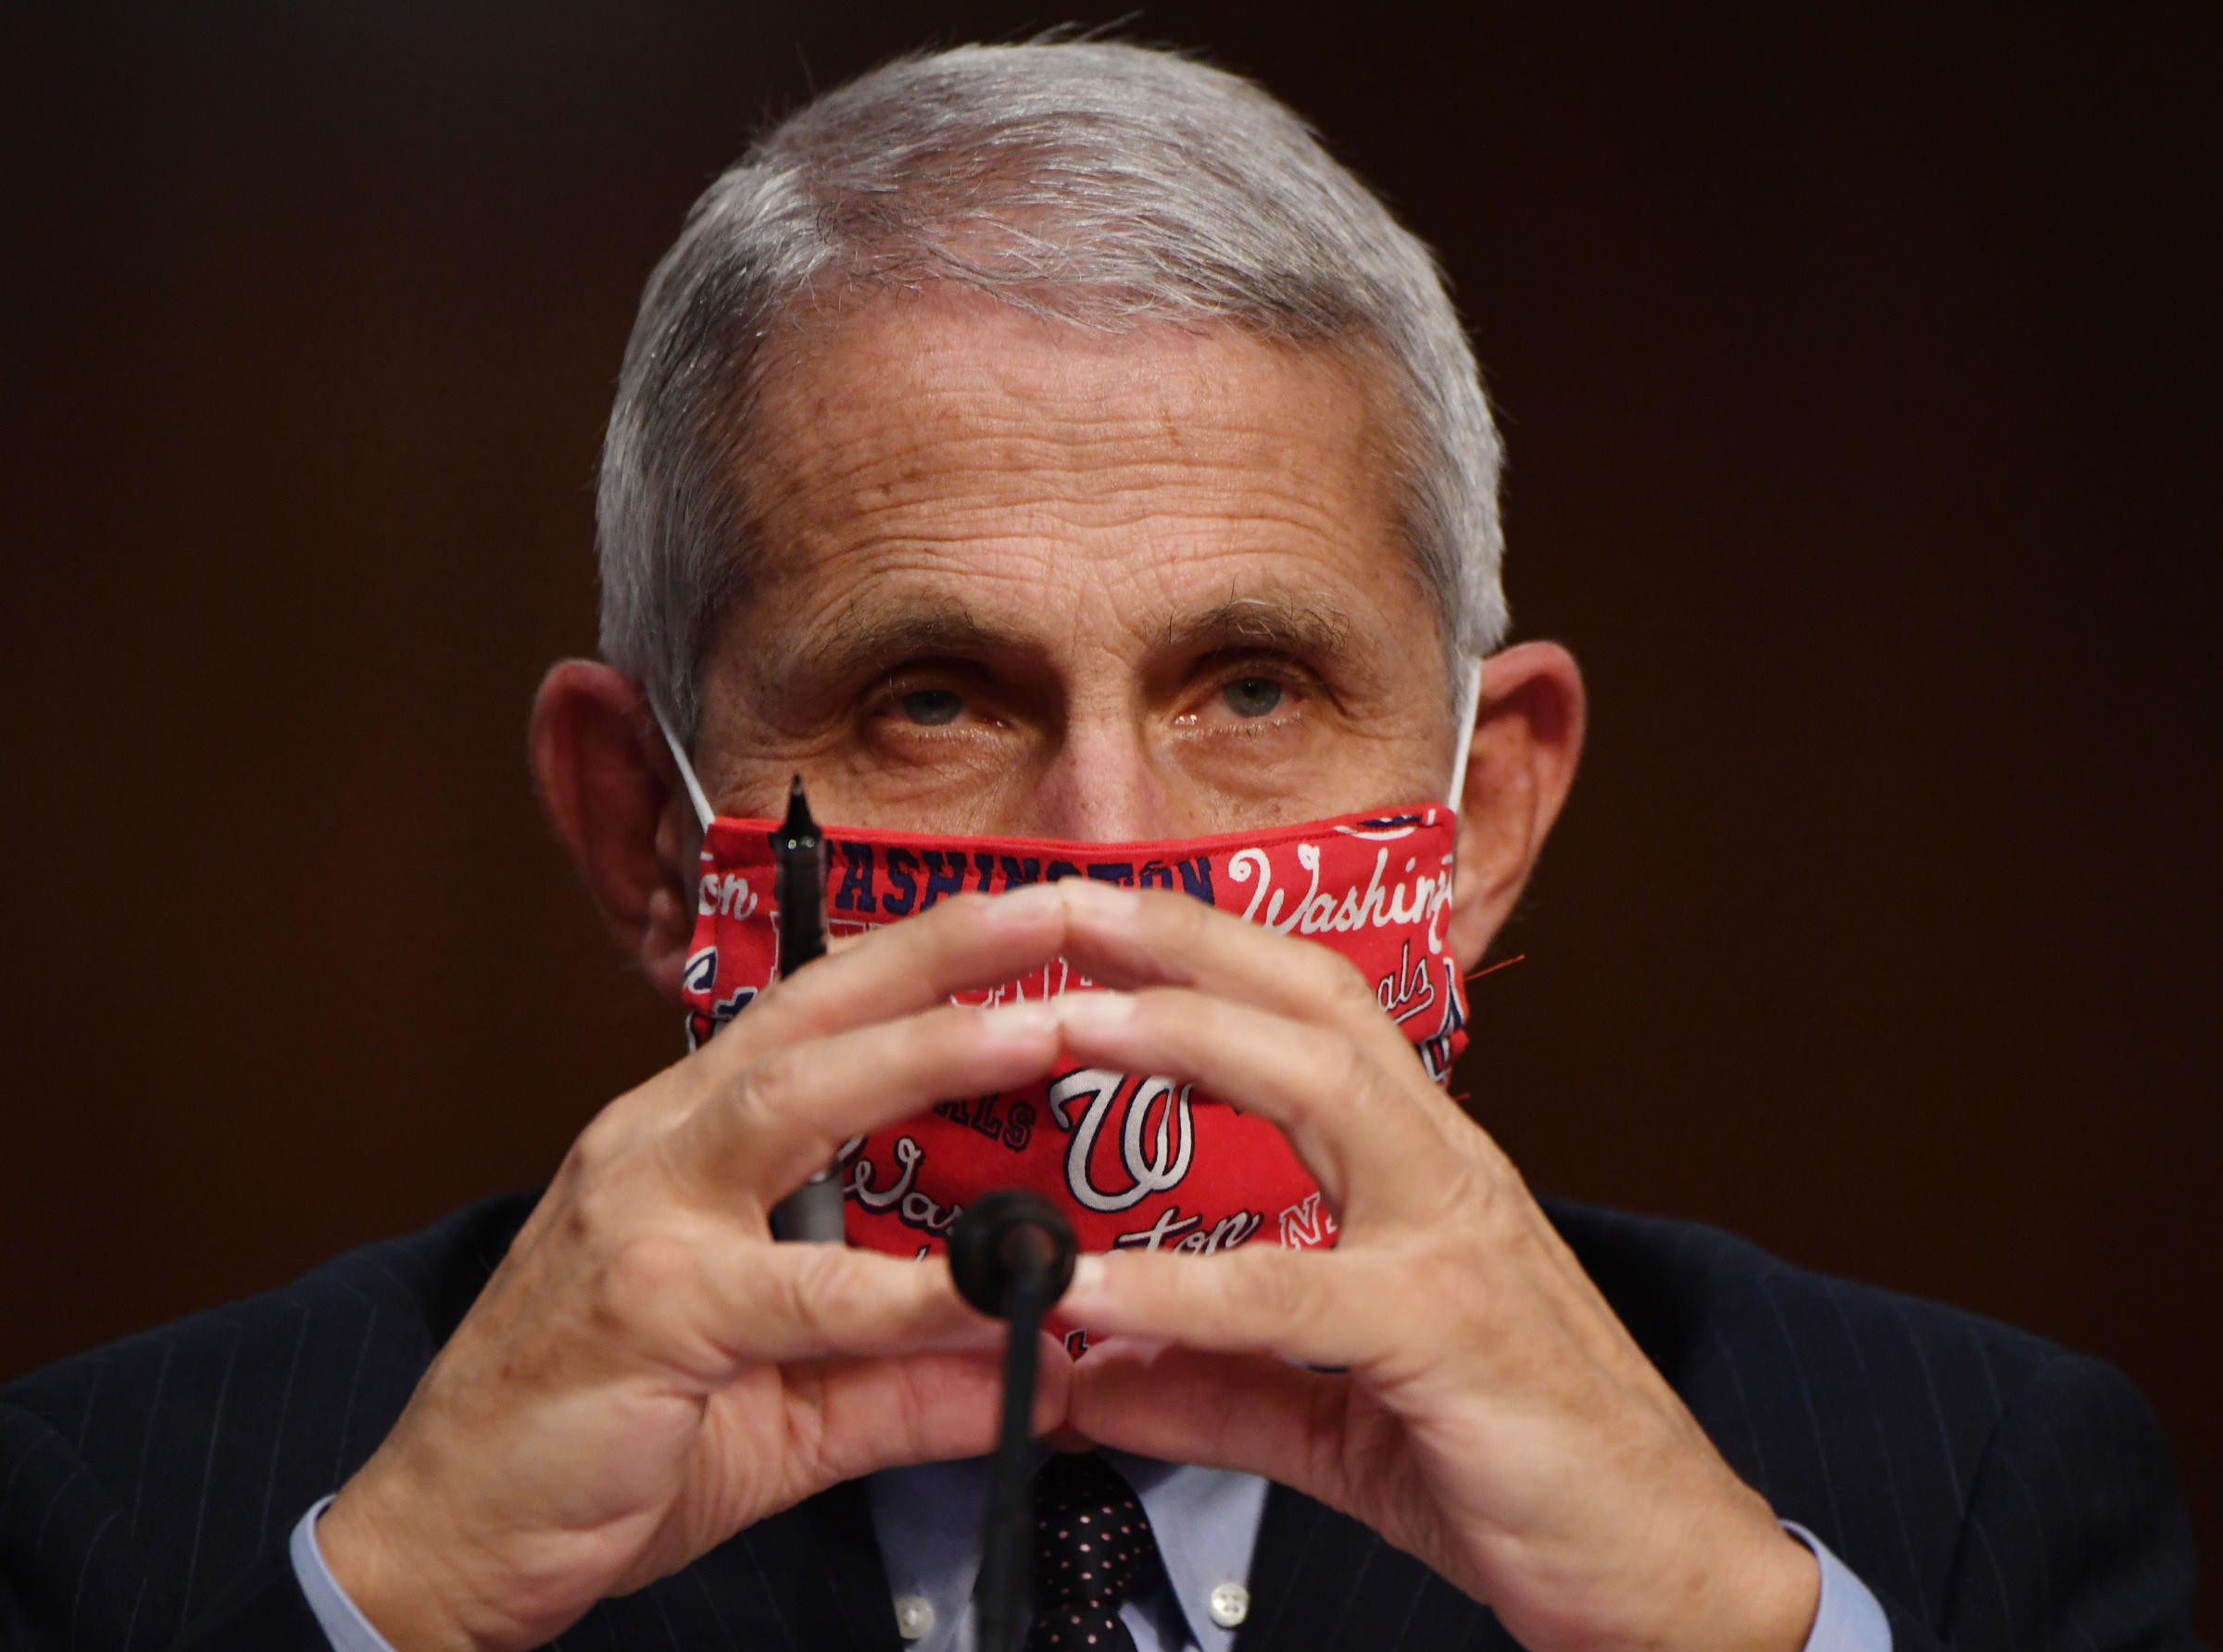 USA  could hit 100,000 new virus cases a day: Fauci